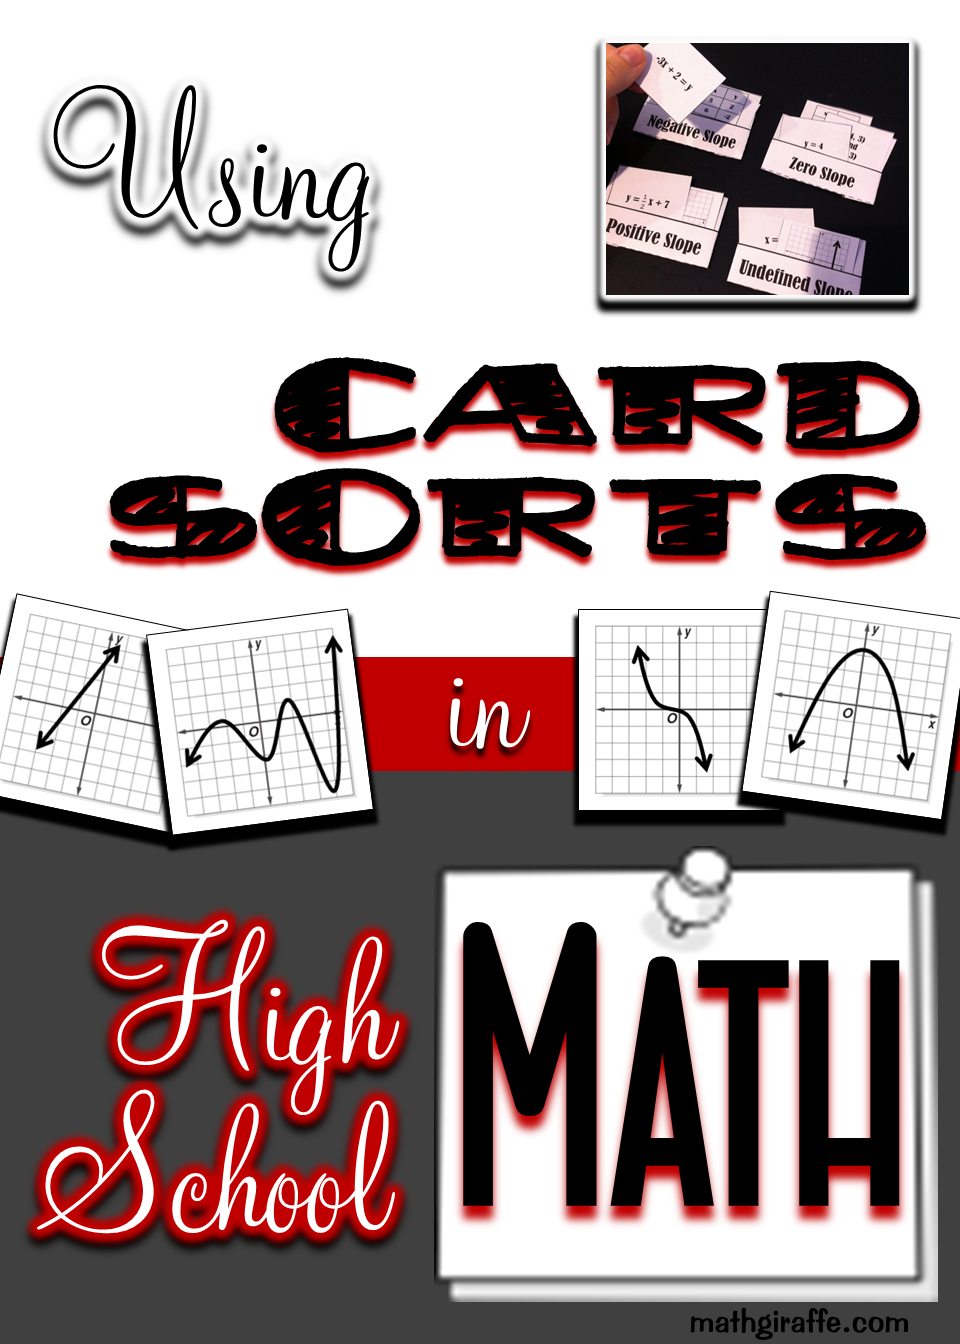 Geometry clipart high school math On about 1000+ High Pinterest